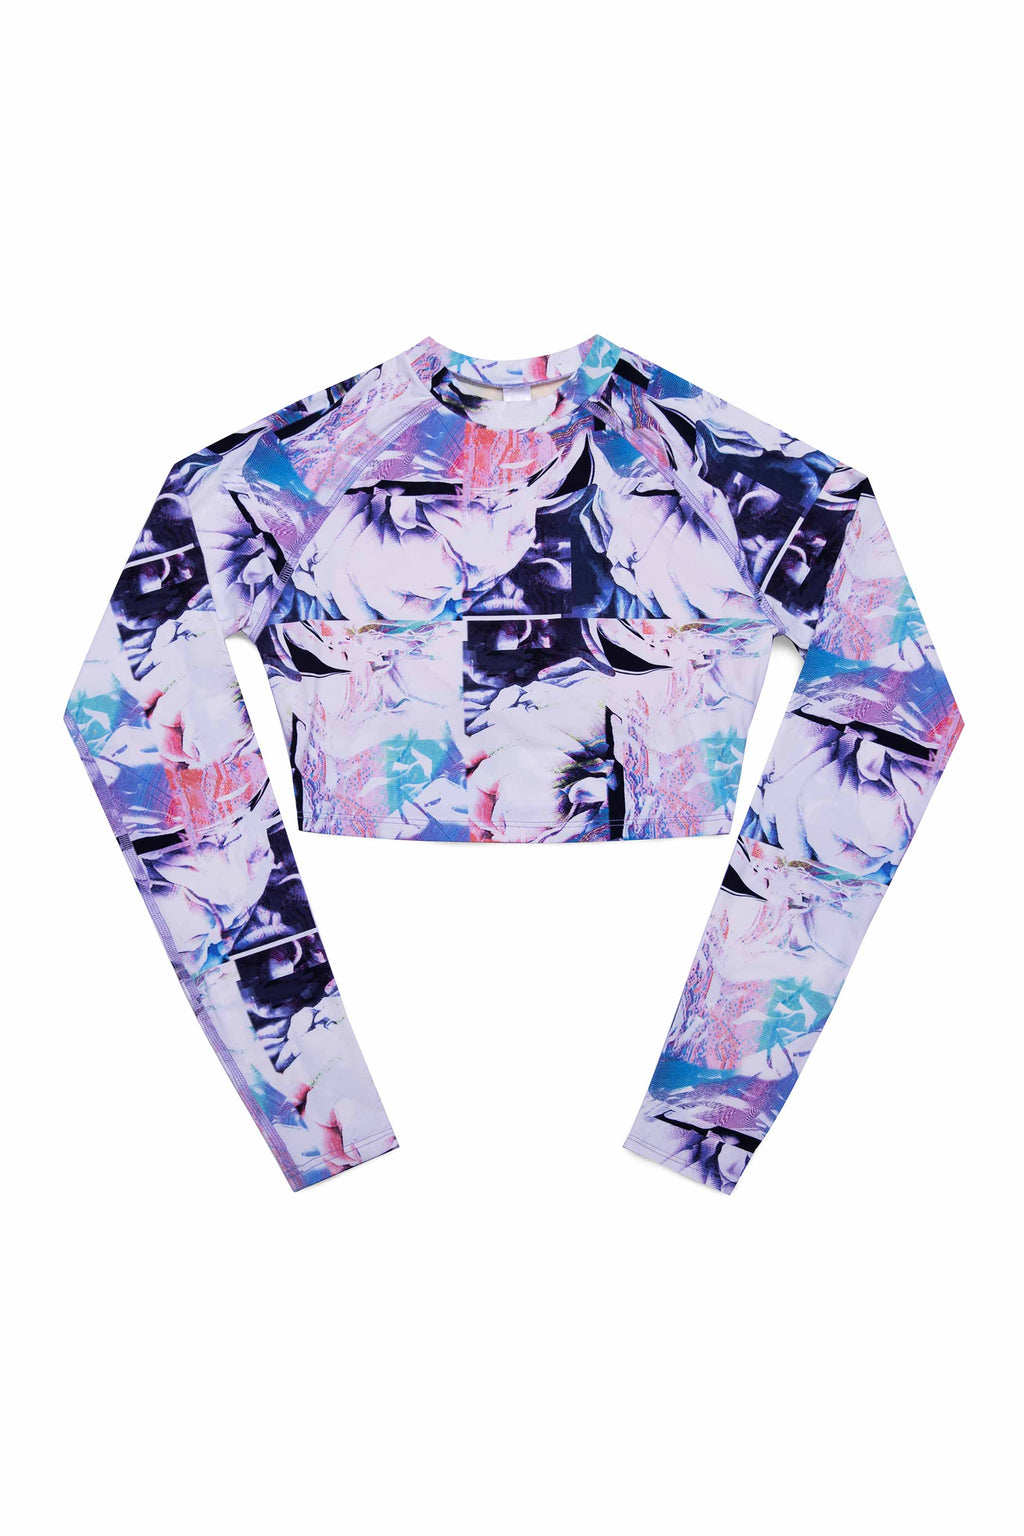 ADELAIDE RASH GUARD